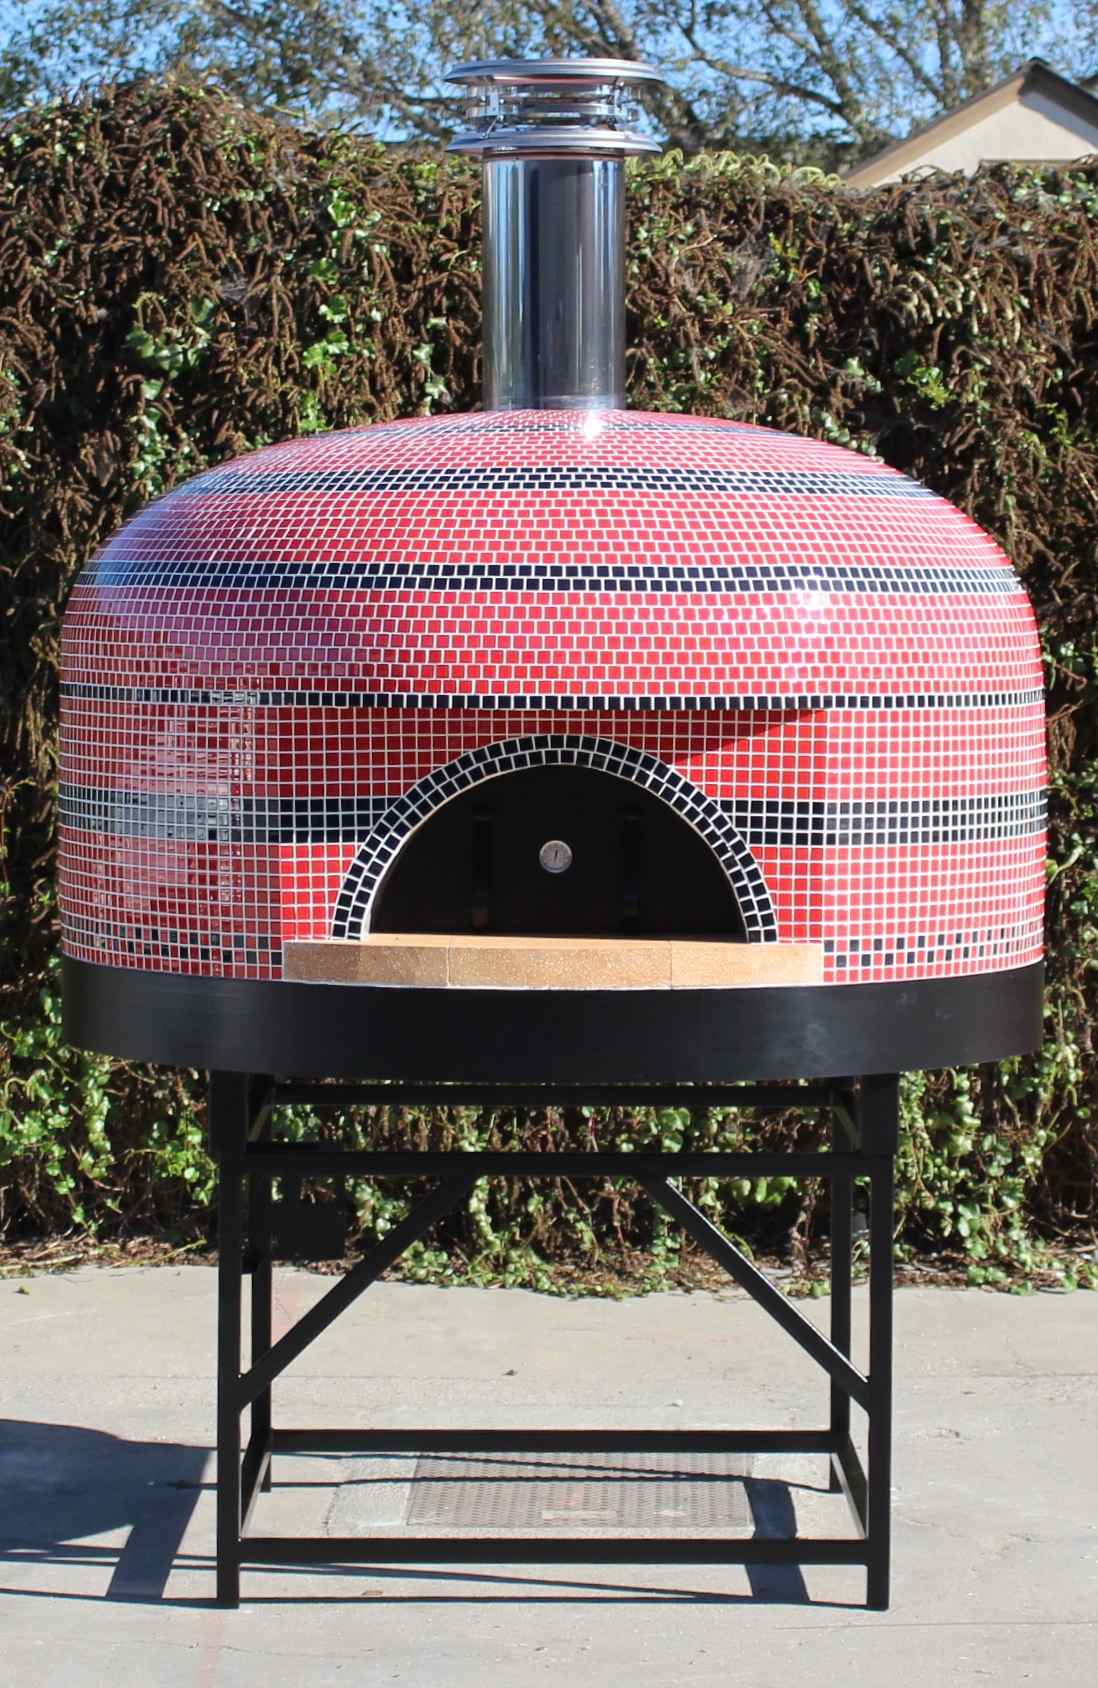 Rocket Stoves And Cob Stoves On Pinterest Rocket Stoves